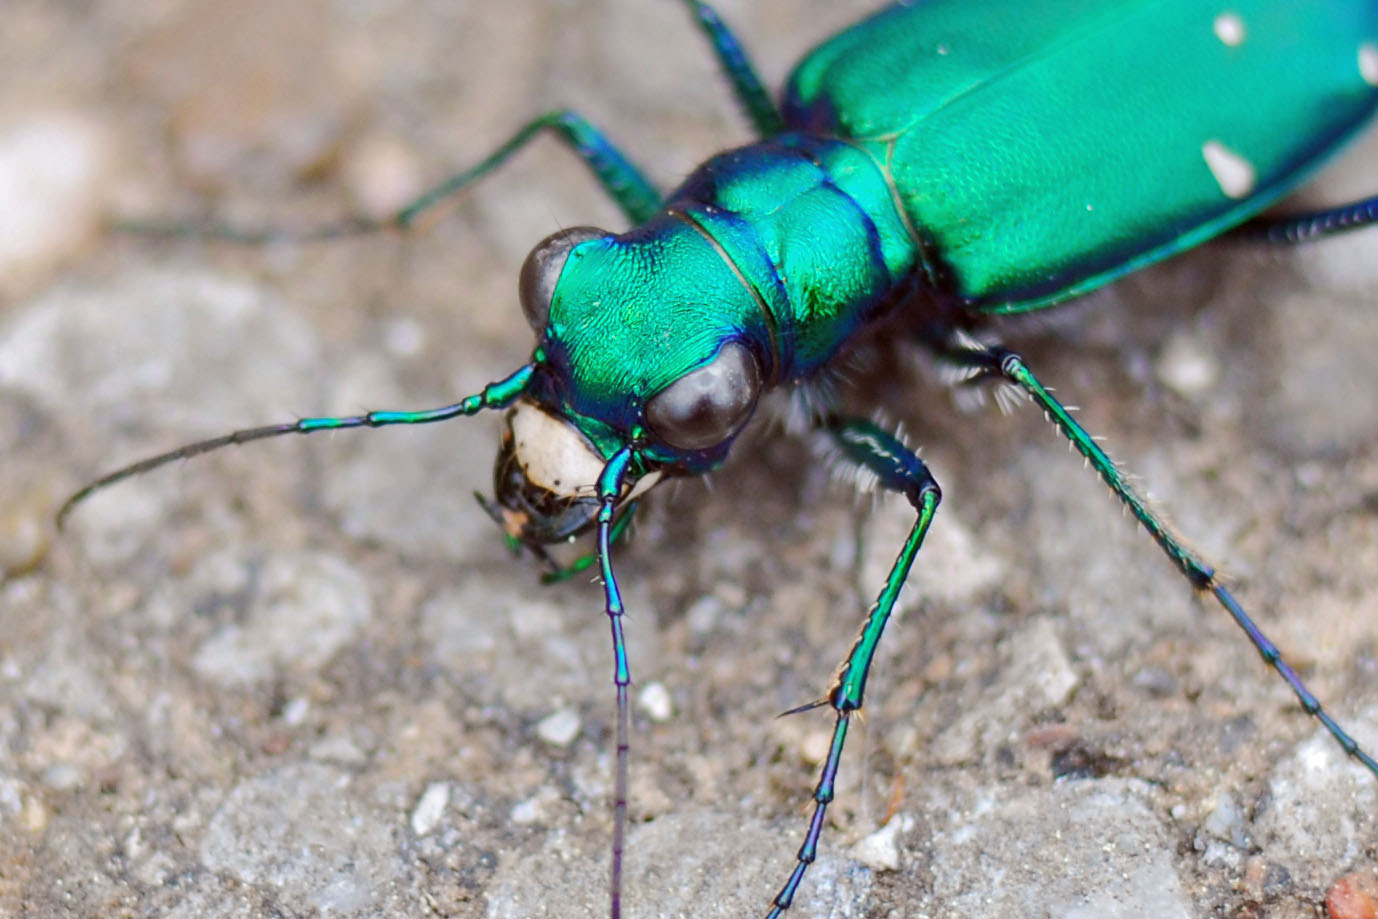 A six-spotted tiger beetle. It's scientific name is Cicindela sexguttata. (Melody McClure, Flickr)